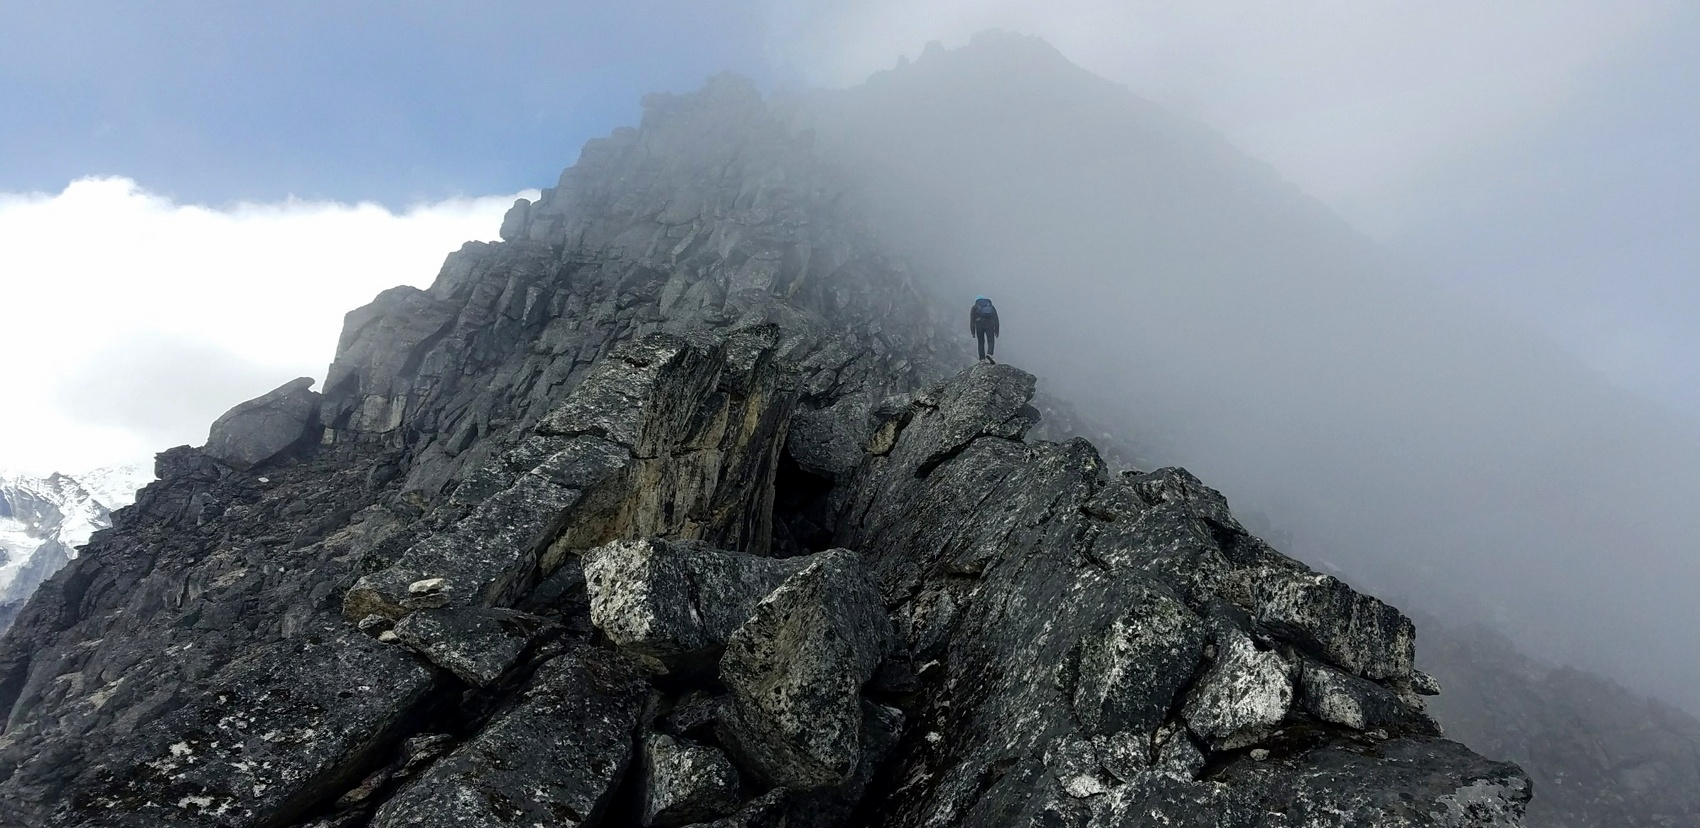 A Sherpa leads the way up through boulders to the summit of Sumdur Peak